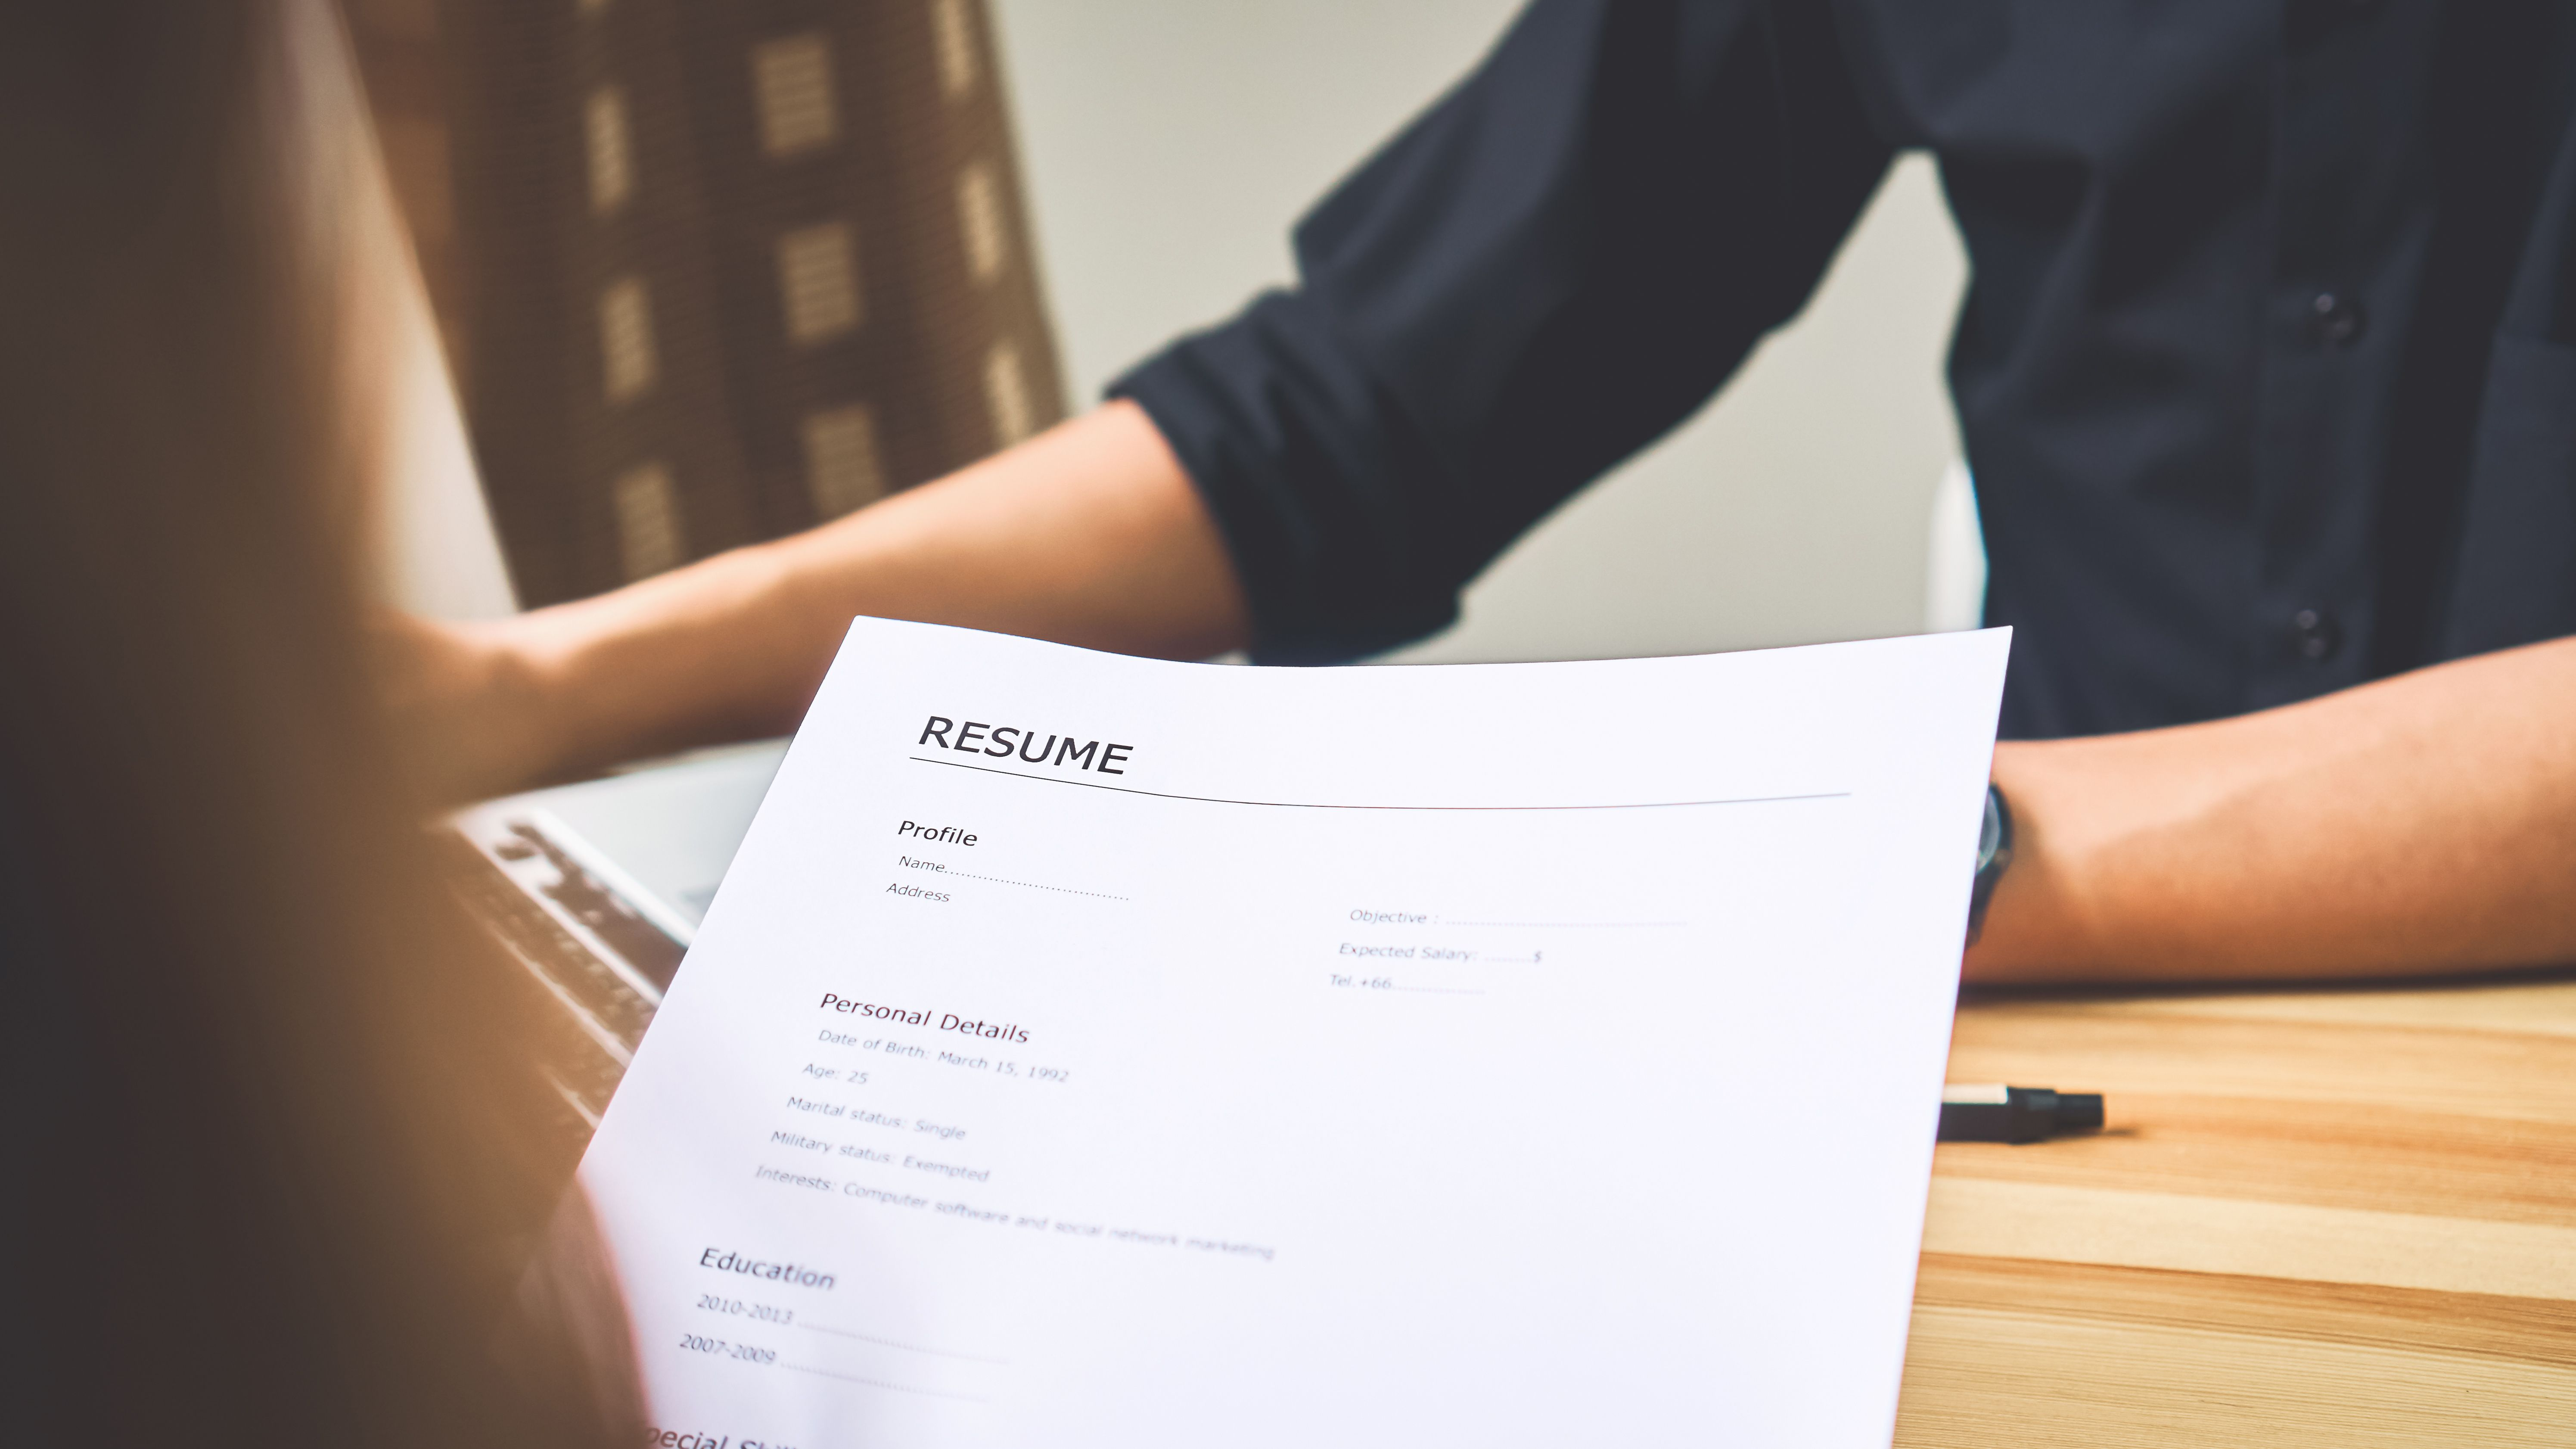 Employment History Verification: Confirming Your Resume